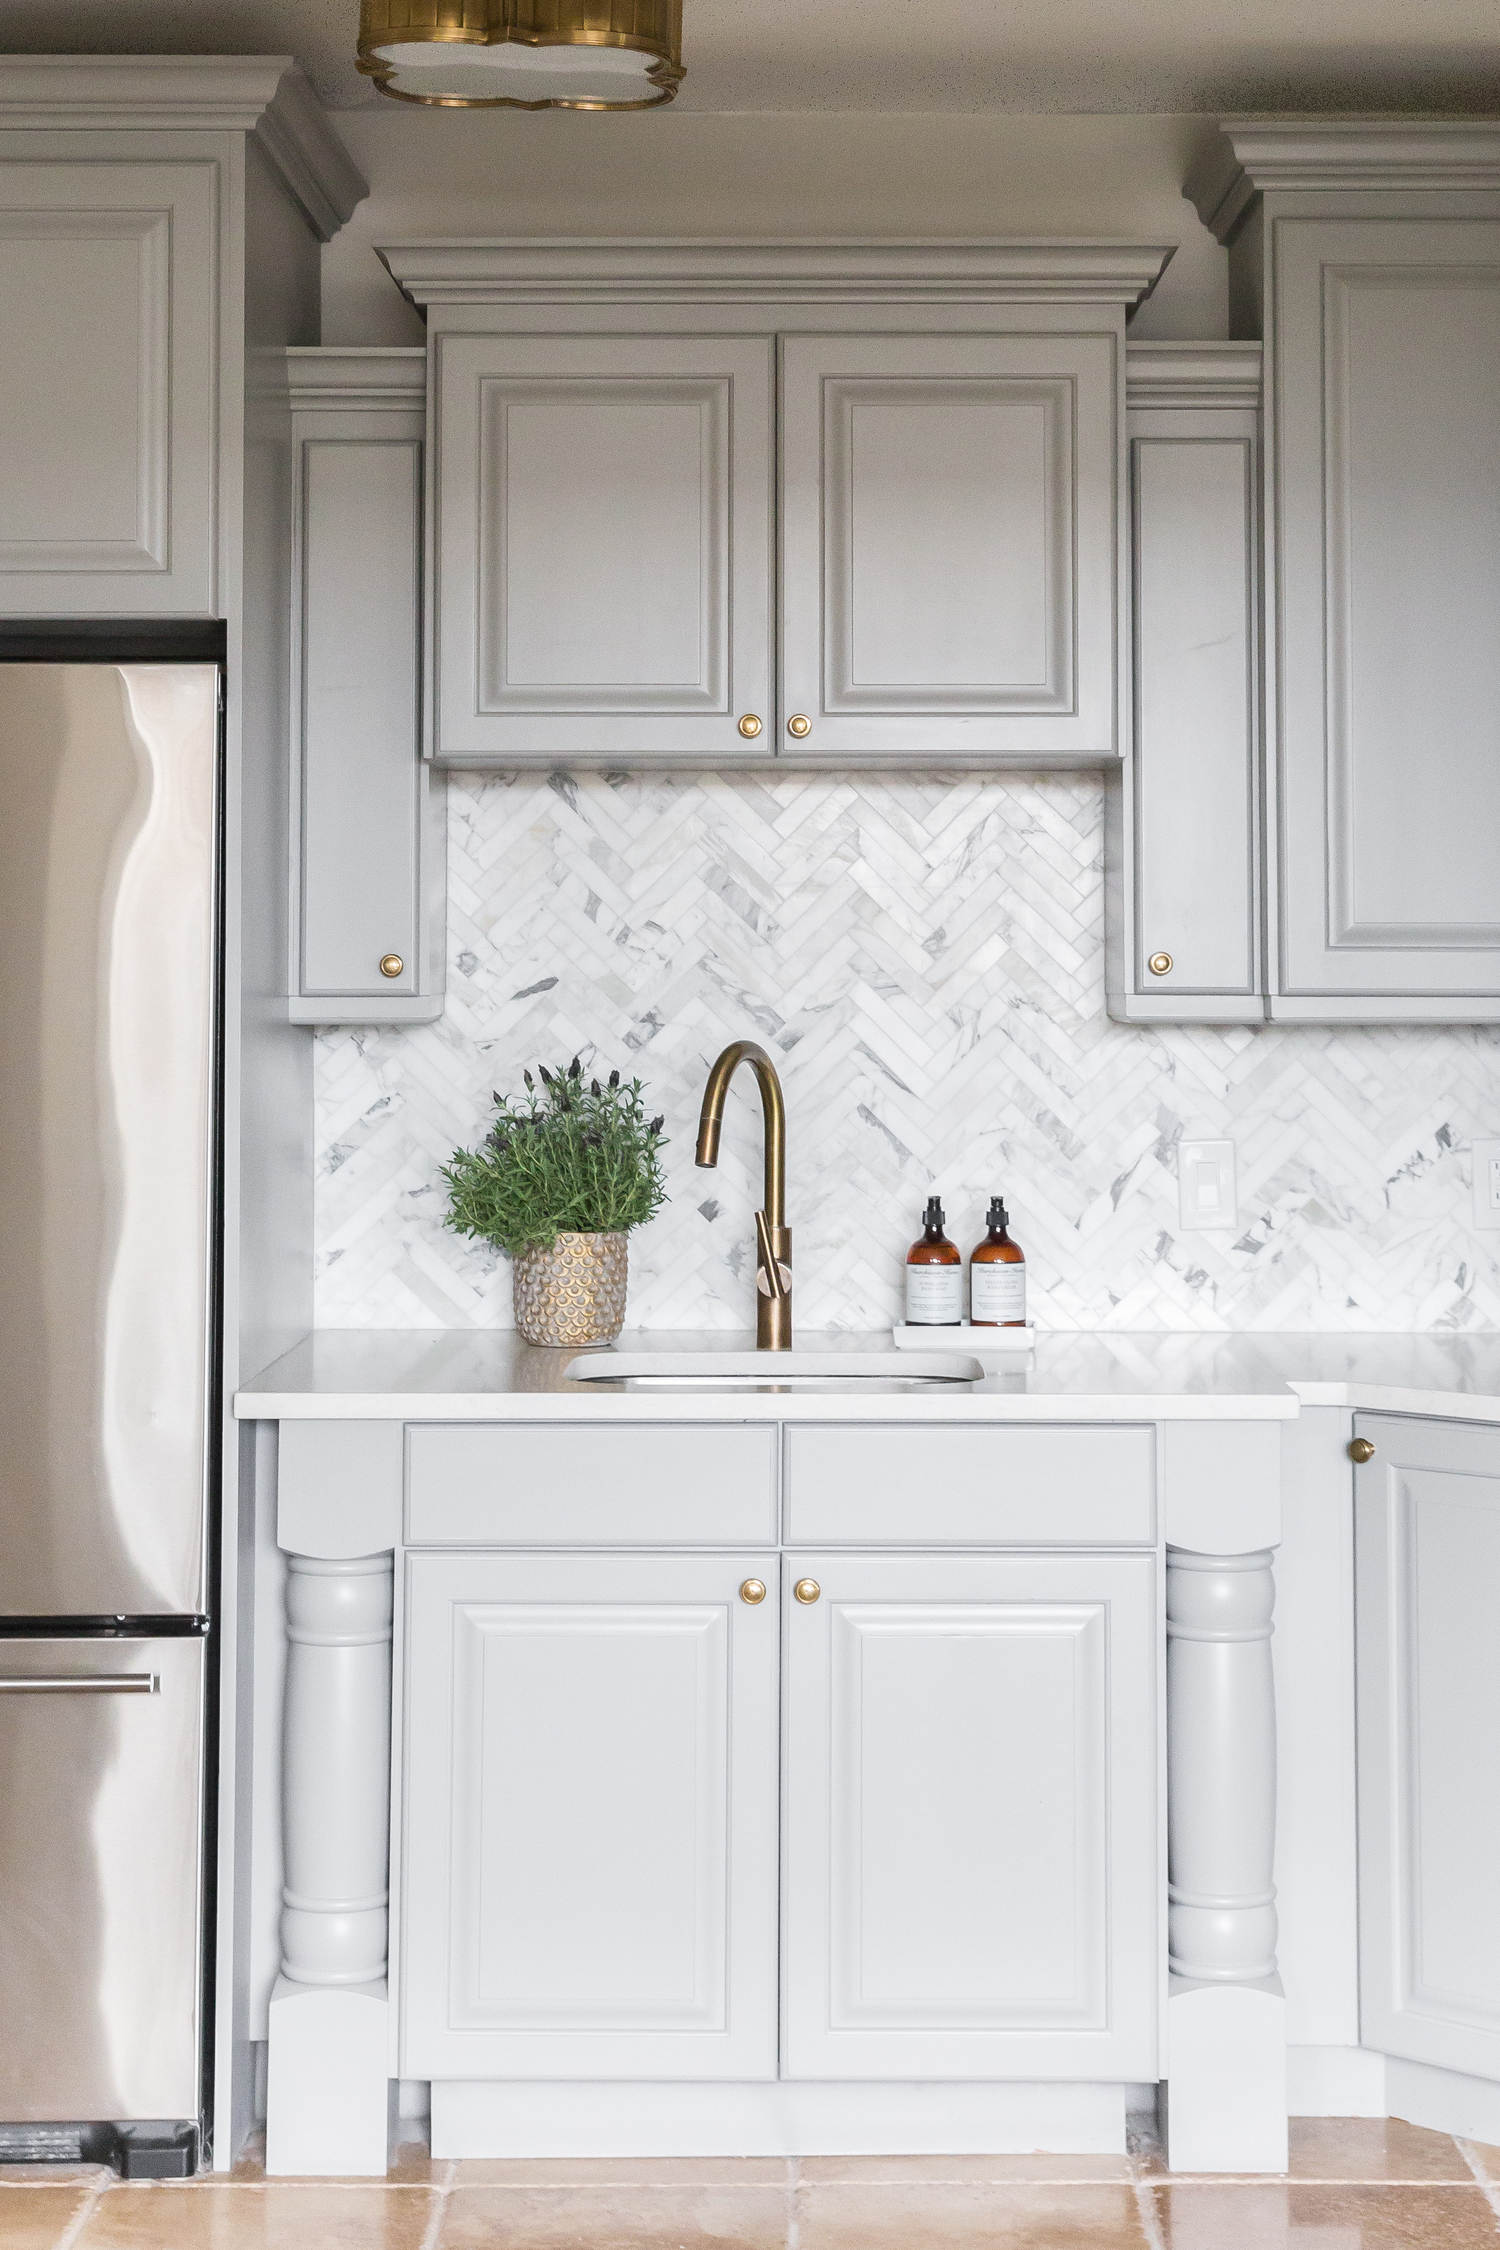 White kitchen cabinets with brass faucet